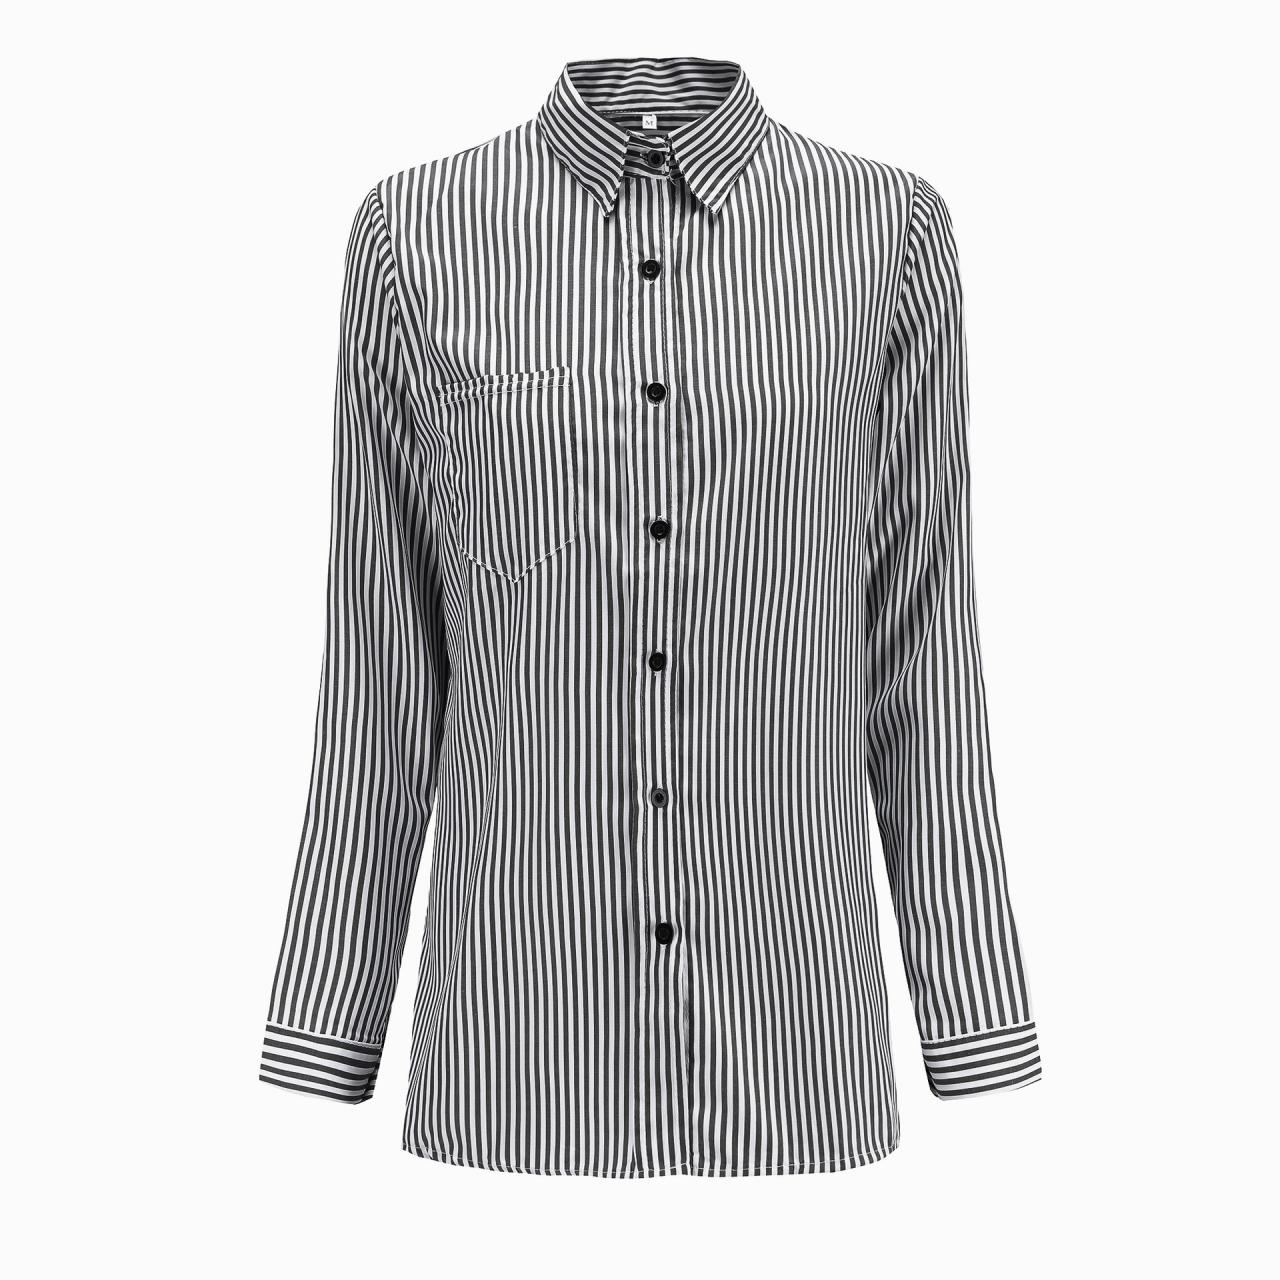 Women Striped Shirt Long Sleeve Turn-Down Collar Work Office Casual Loose Top Blouses black